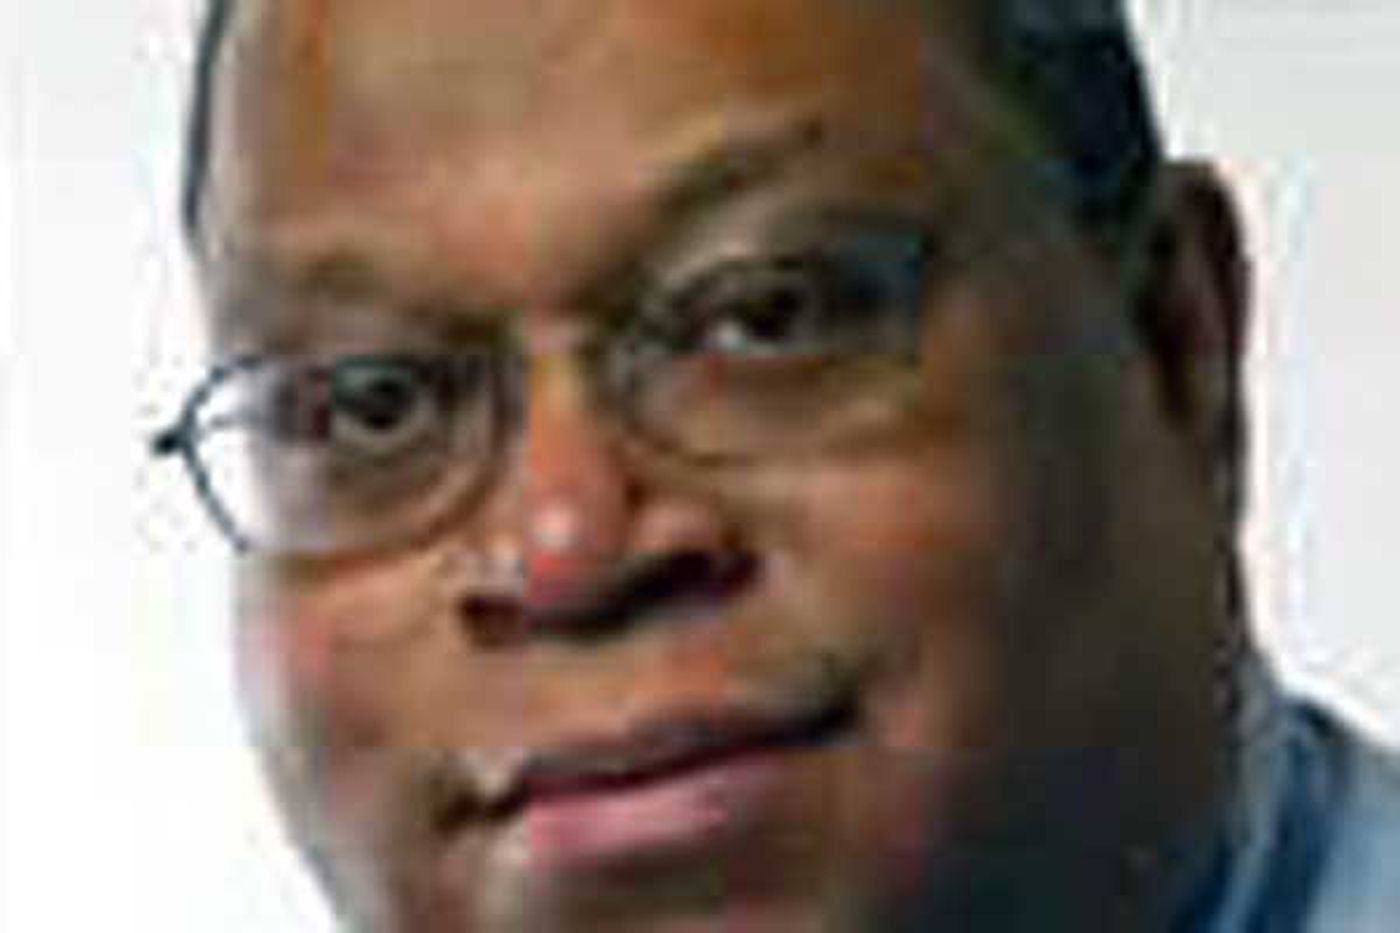 Ronald W. Wade, 62, former news editor at the Inquirer